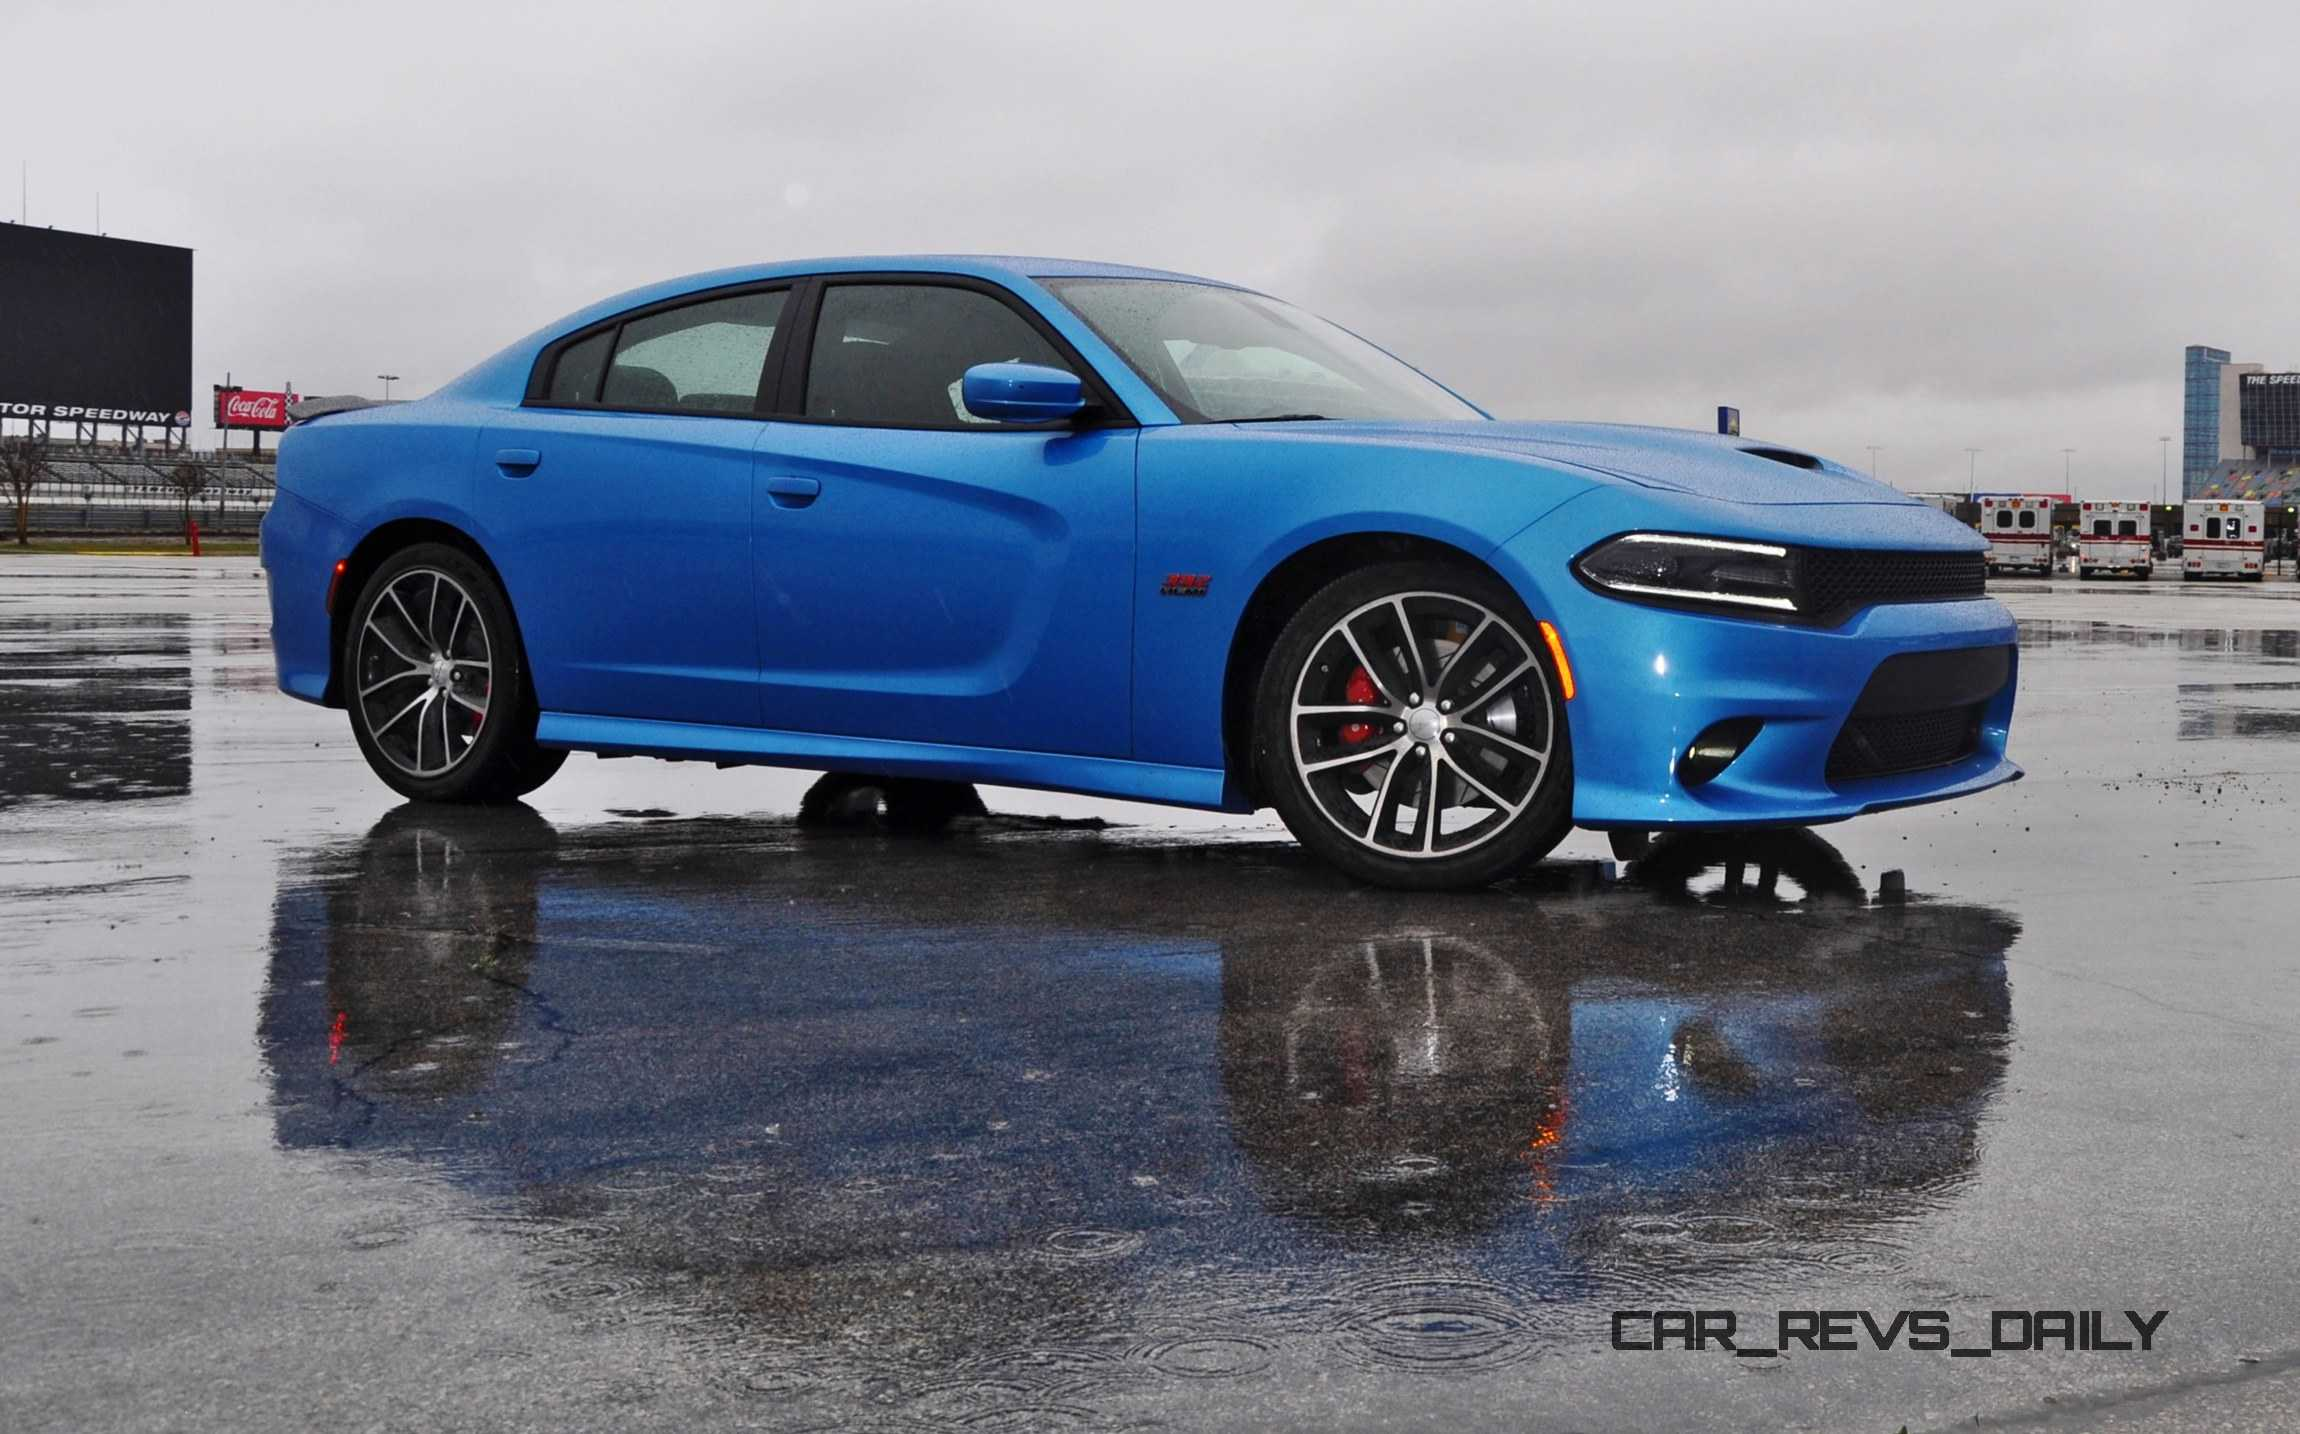 Dodge Charger Rt Scat Pack In B Blue on 2018 Dodge Durango Rt Specs